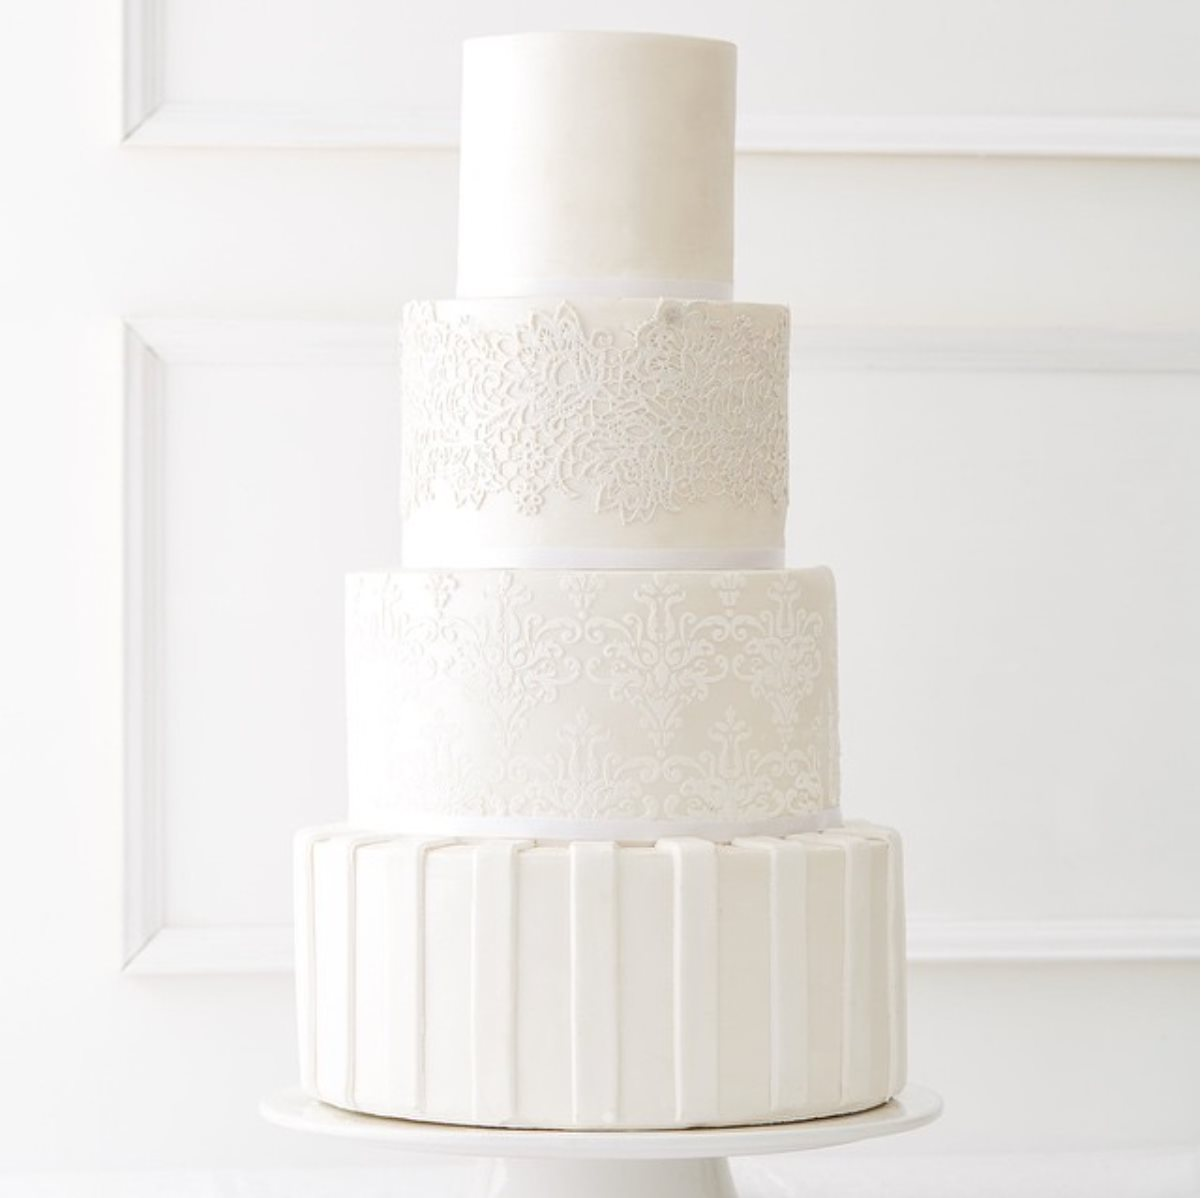 Kashaya & Co wedding cake